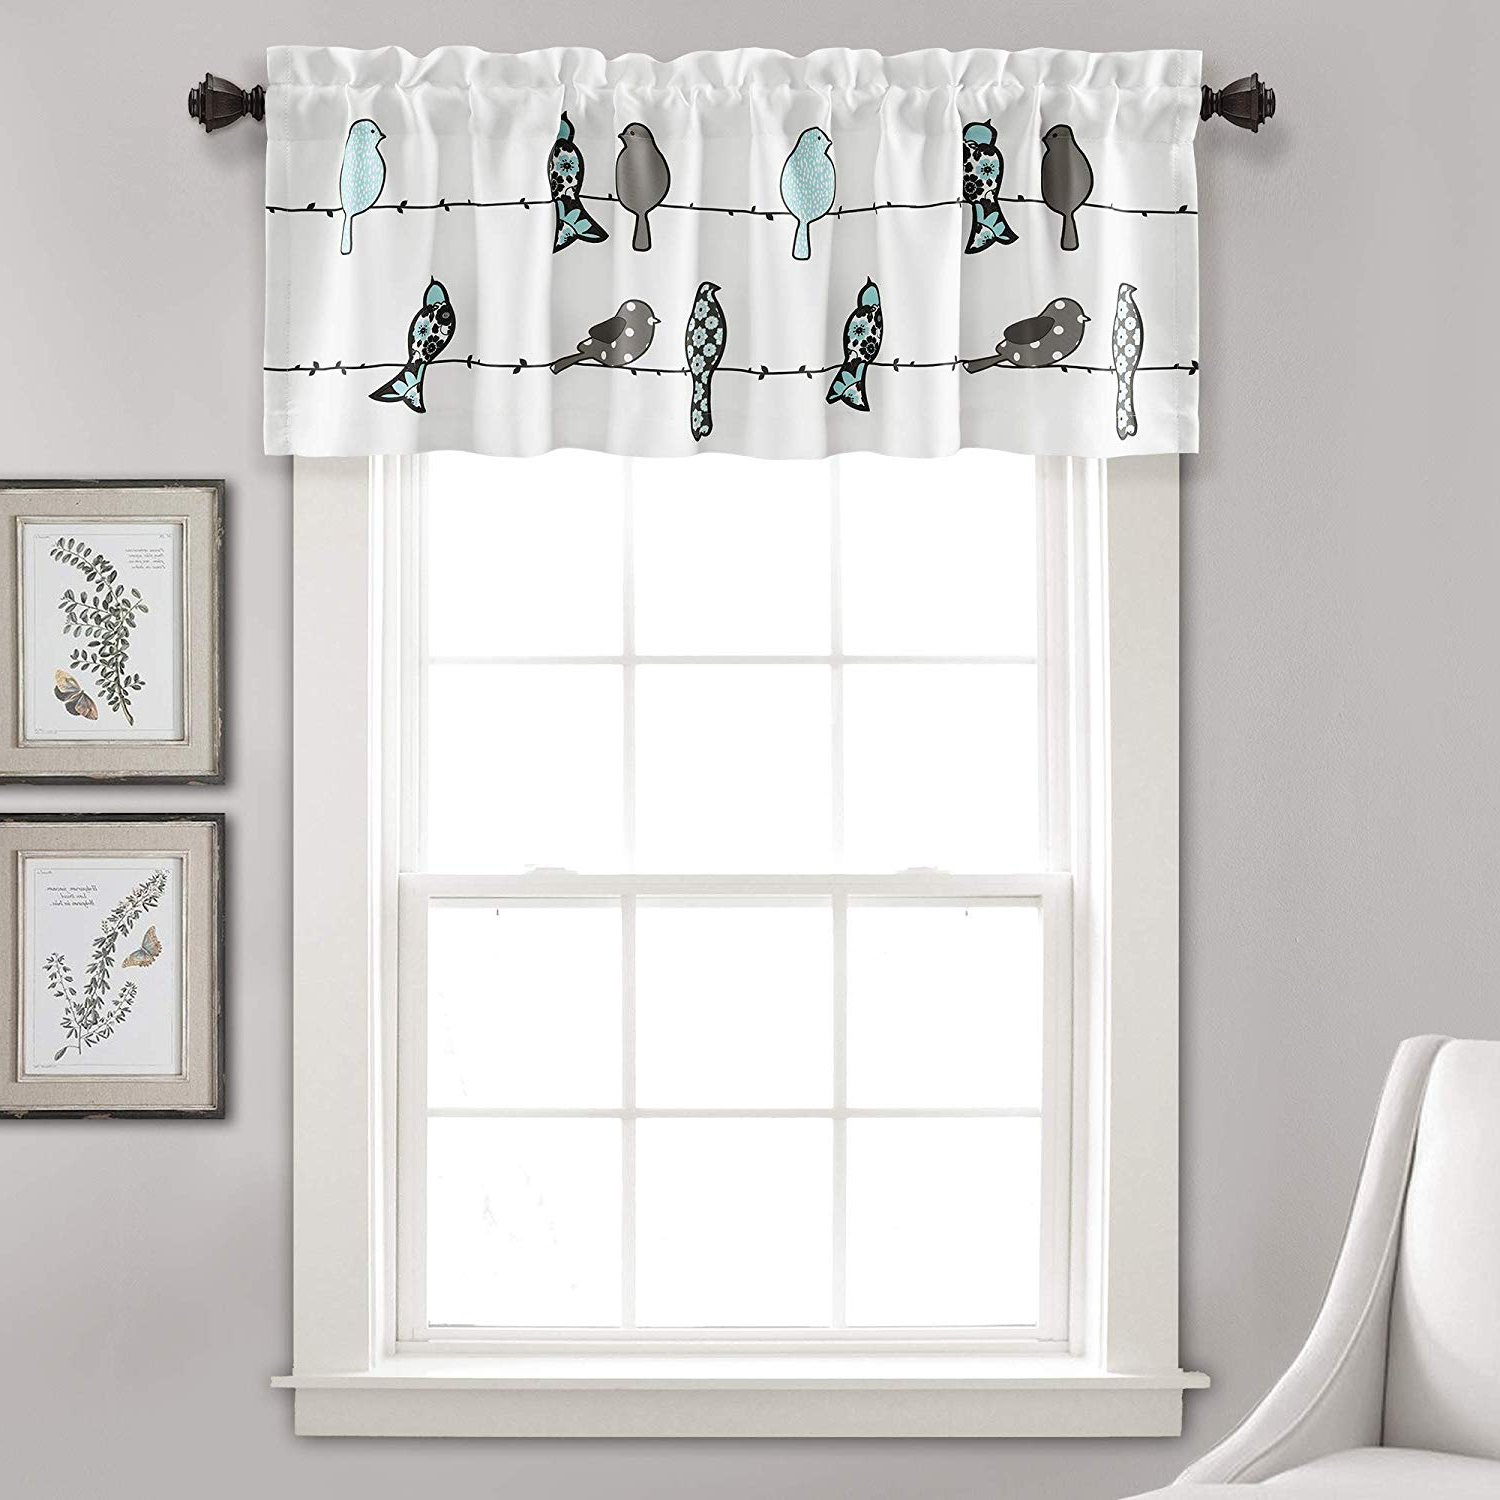 "Rowley Birds Valances For 2020 Lush Decor Rowley Birds Curtain Valance (single Panel), 18"" X 52"", Blue And Gray, L, Blue & Gray (View 2 of 20)"